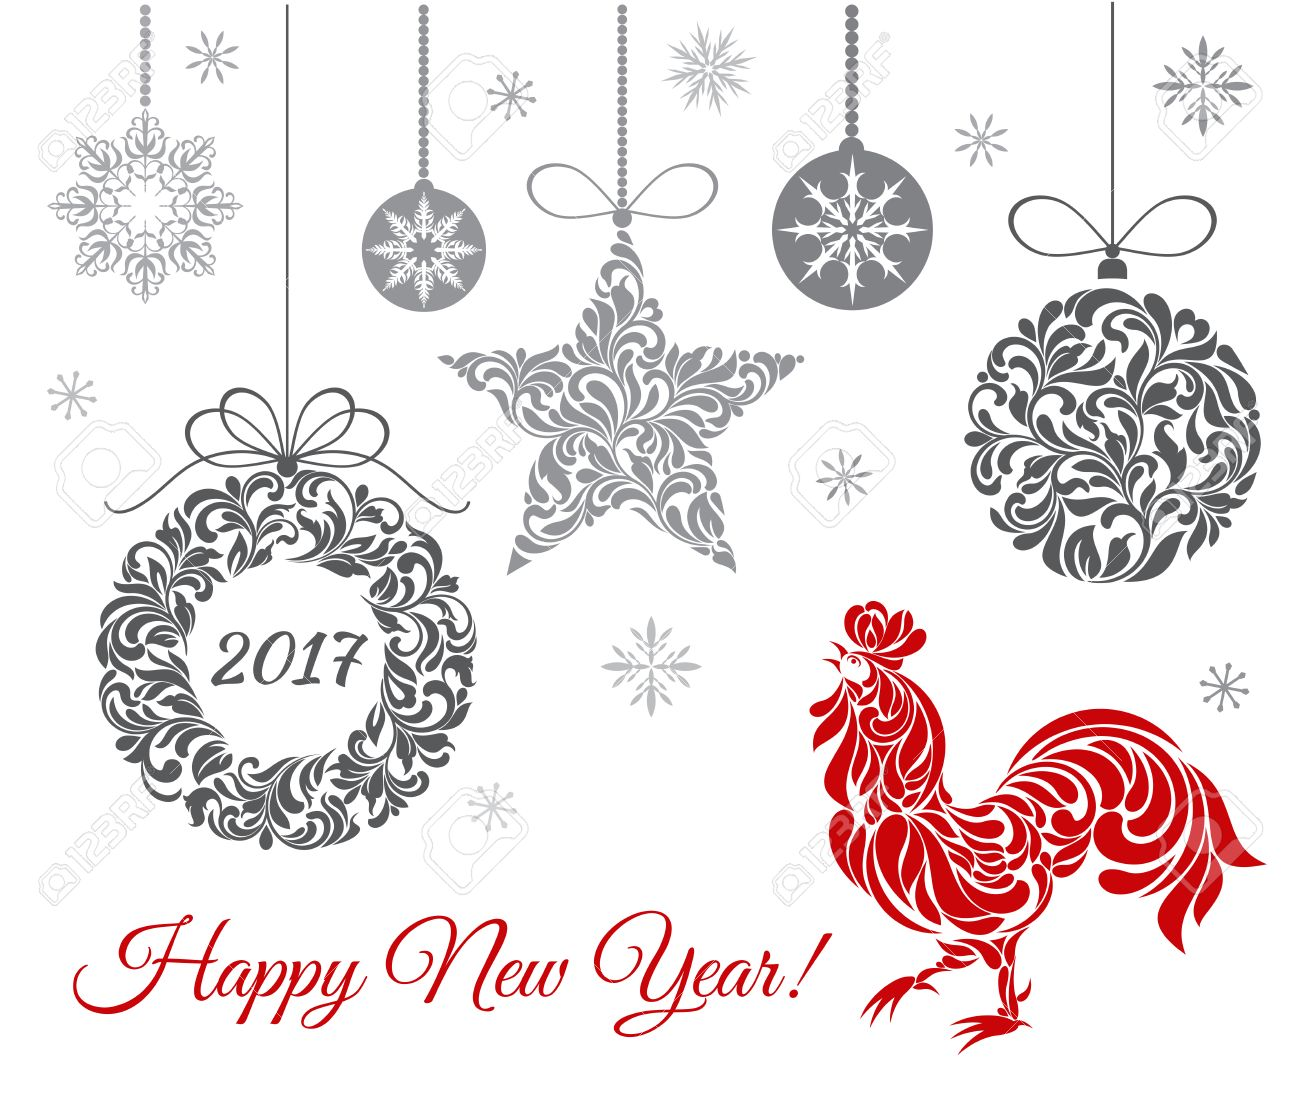 Rooster Symbol Of 2017 On The Chinese Calendar End Christmas Decorations